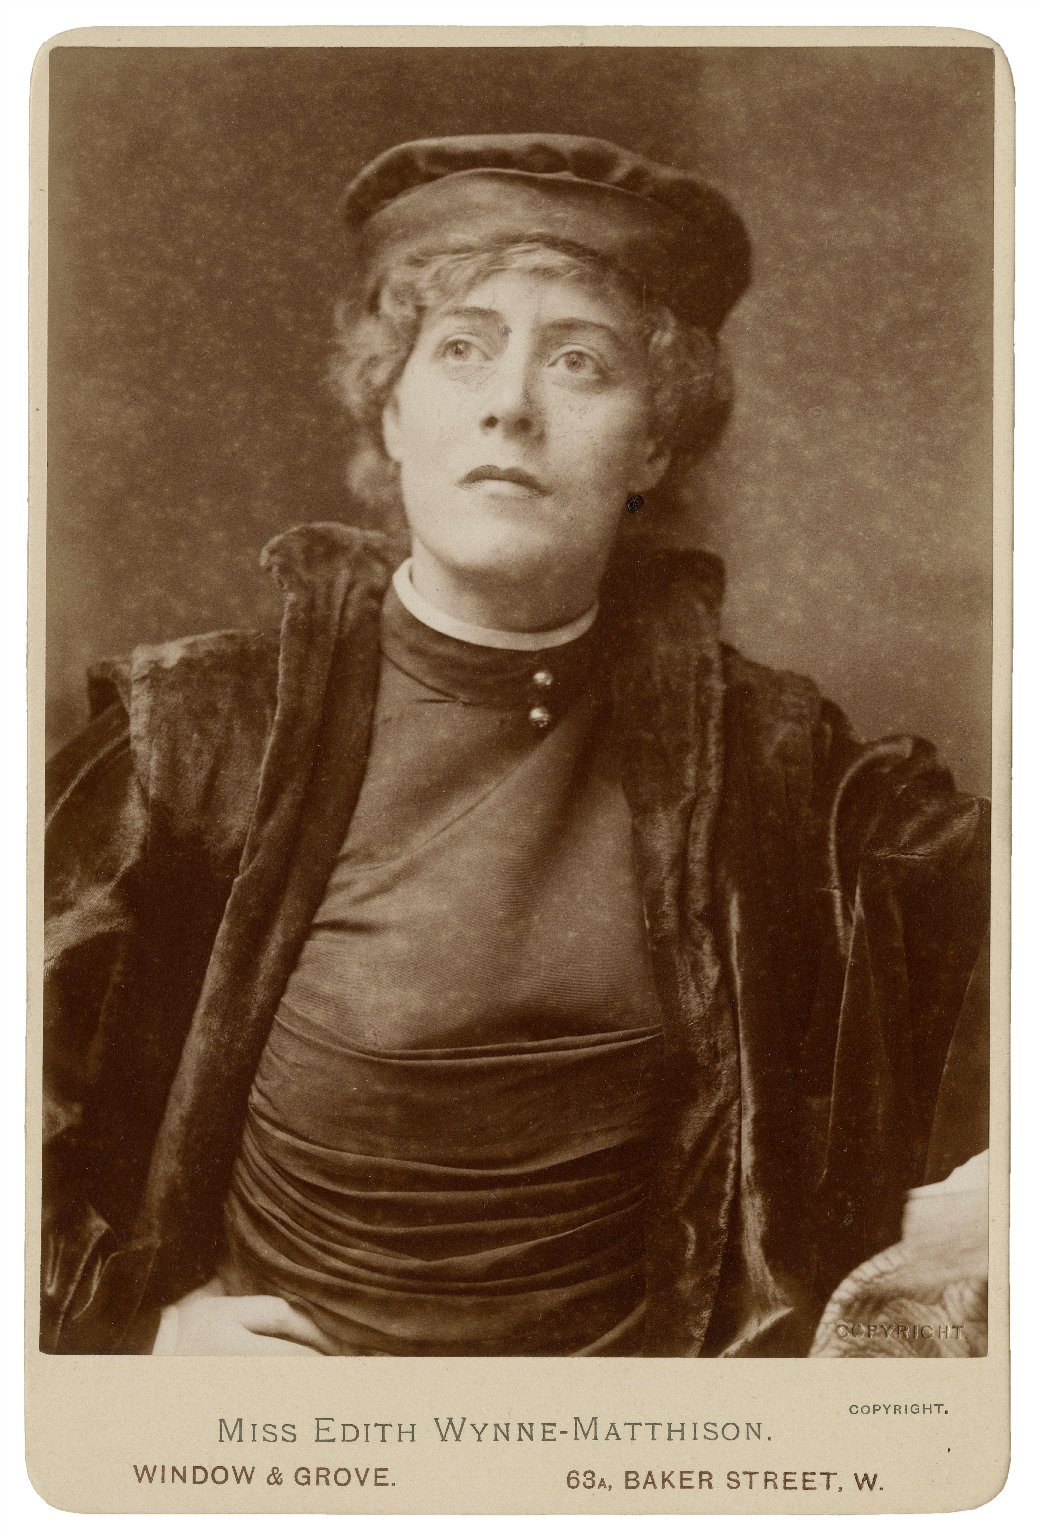 [Edith Wynne Matthison as Portia in Shakespeare's Merchant of Venice] [graphic] / Window & Grove.